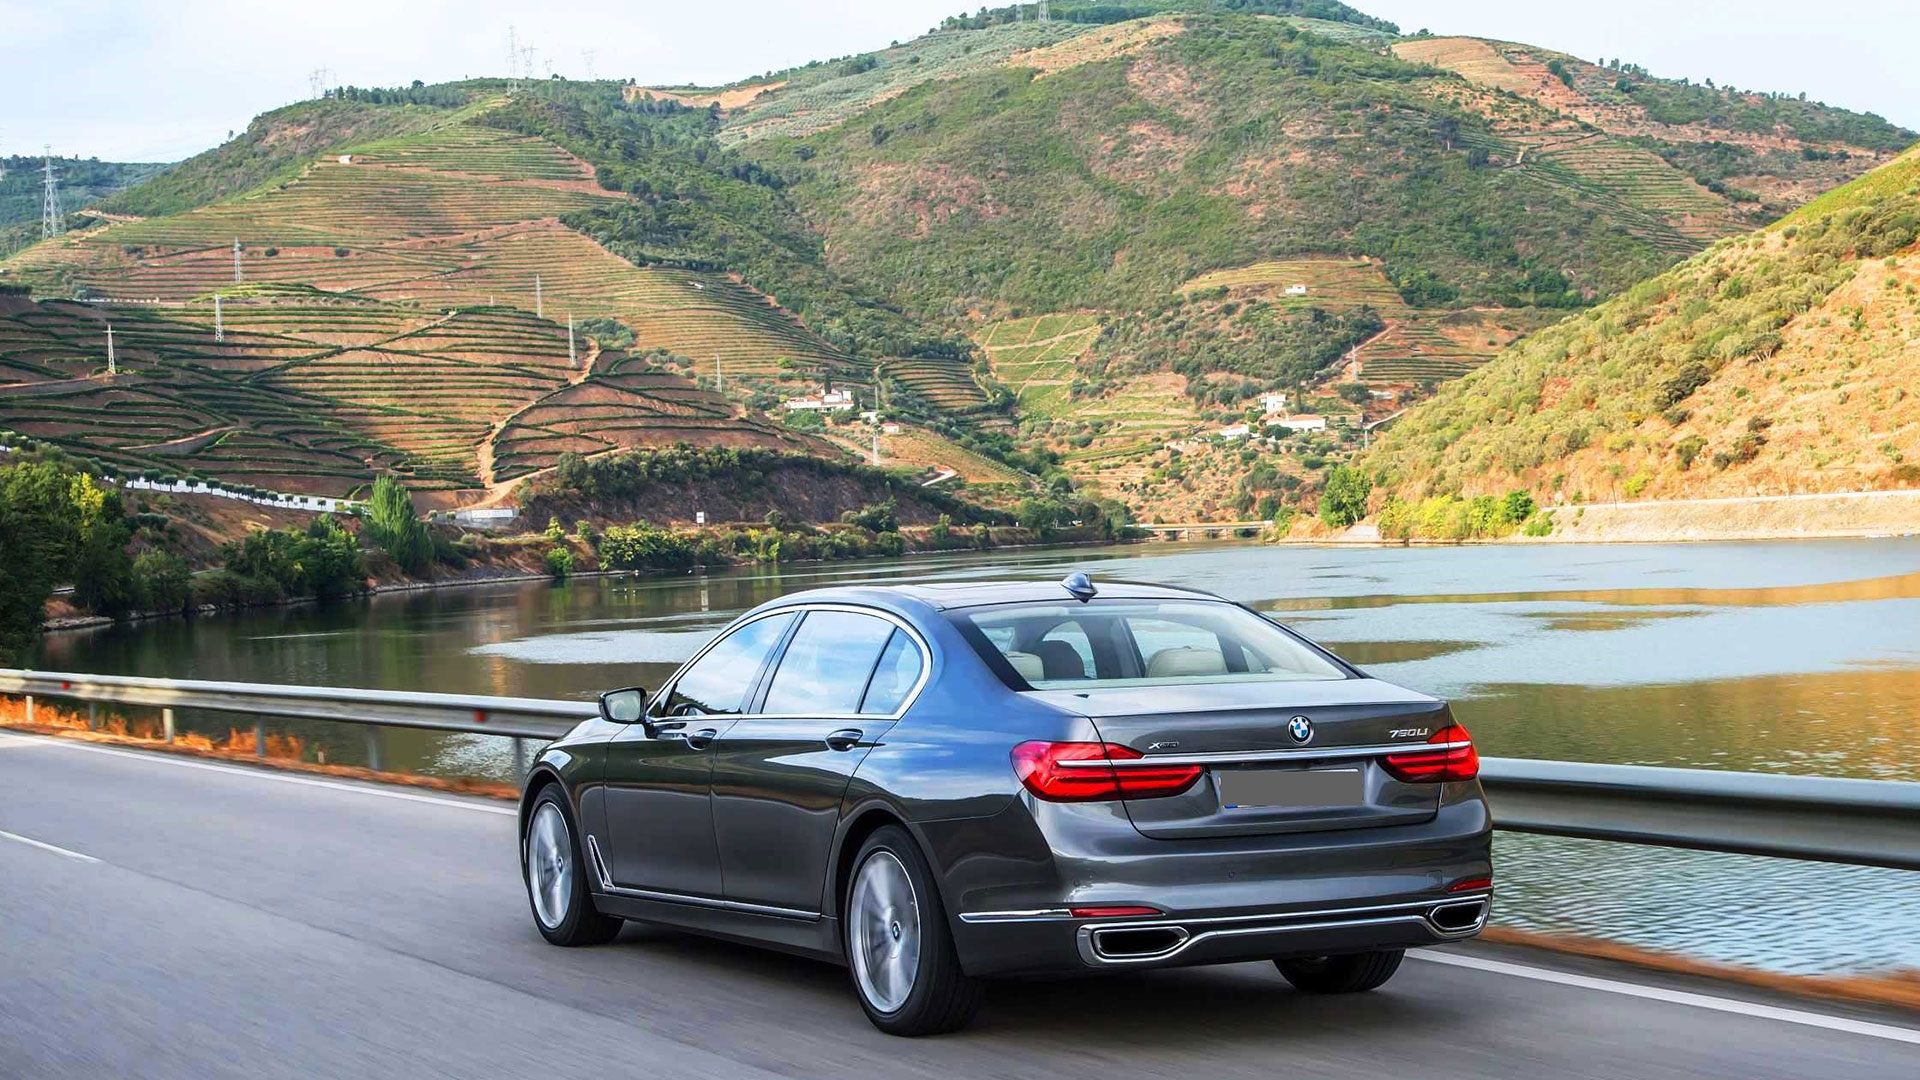 Douro Valley Luxury Private Experience